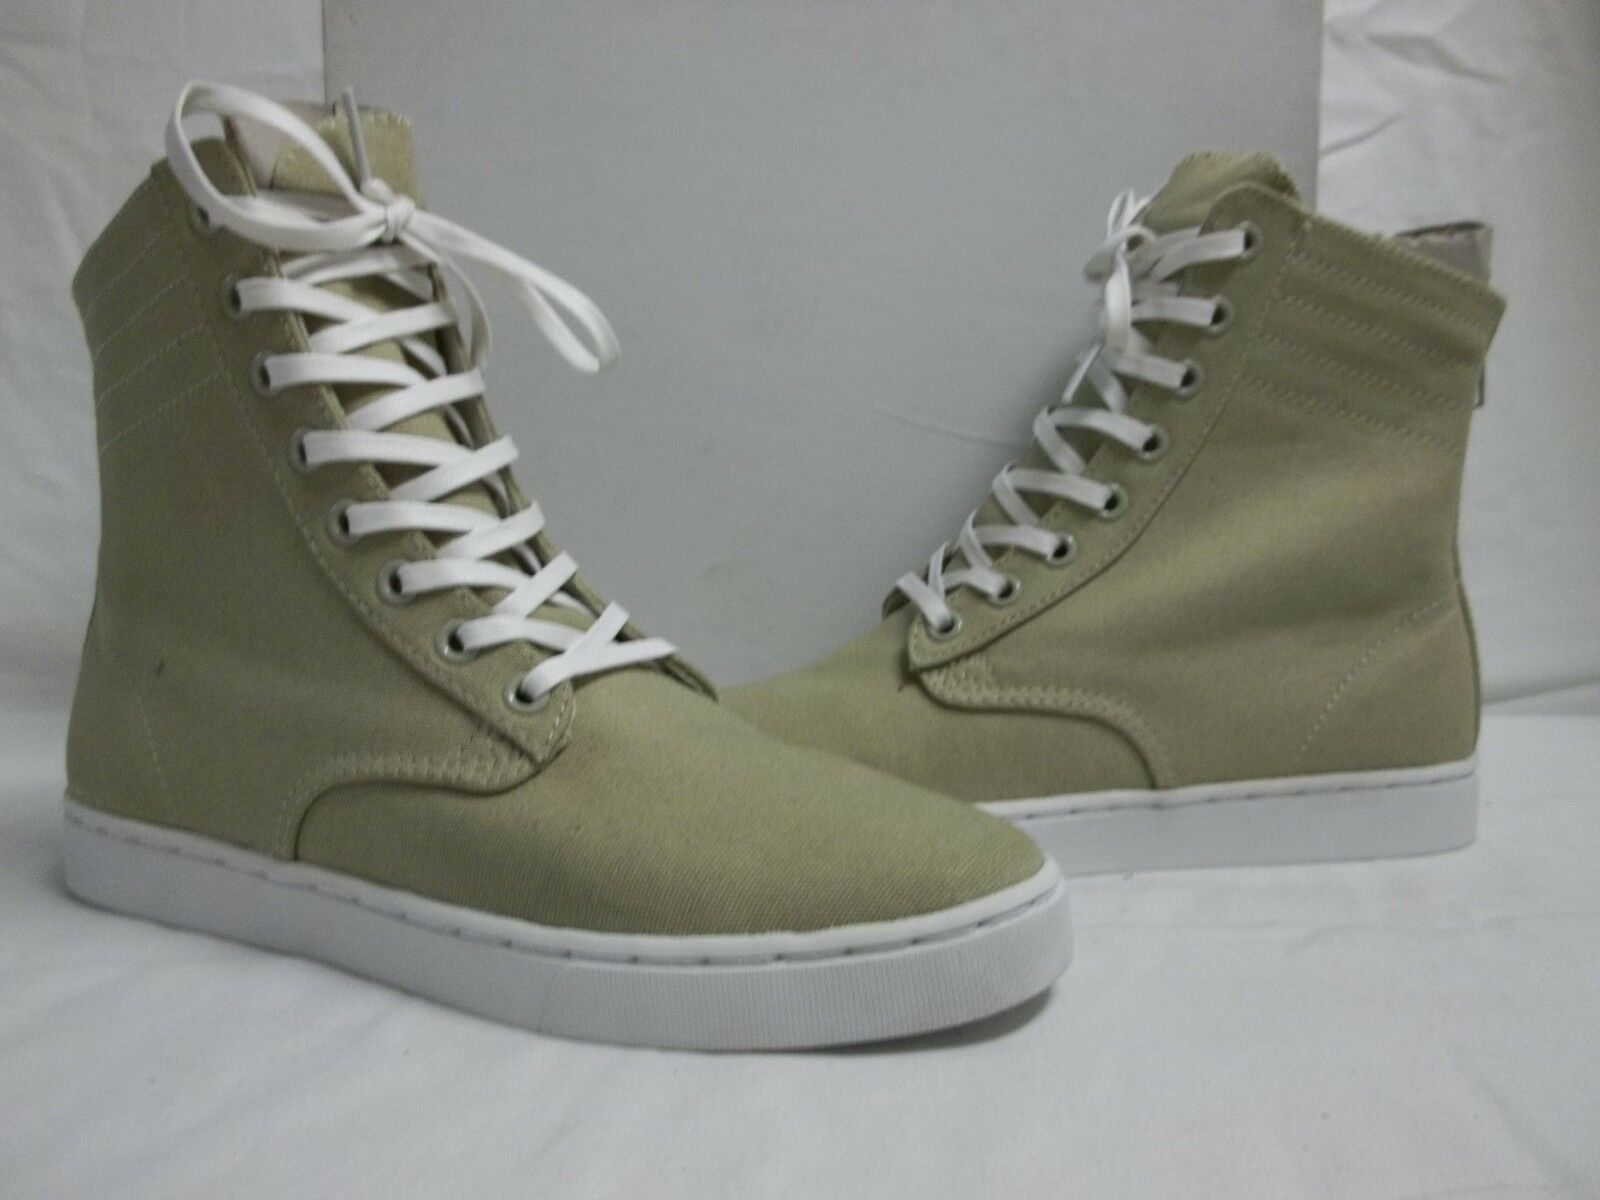 KR3W Sz EU EU EU 41   8 M Franklin Off White Canvas High Top  New Uomo Shoes 370343